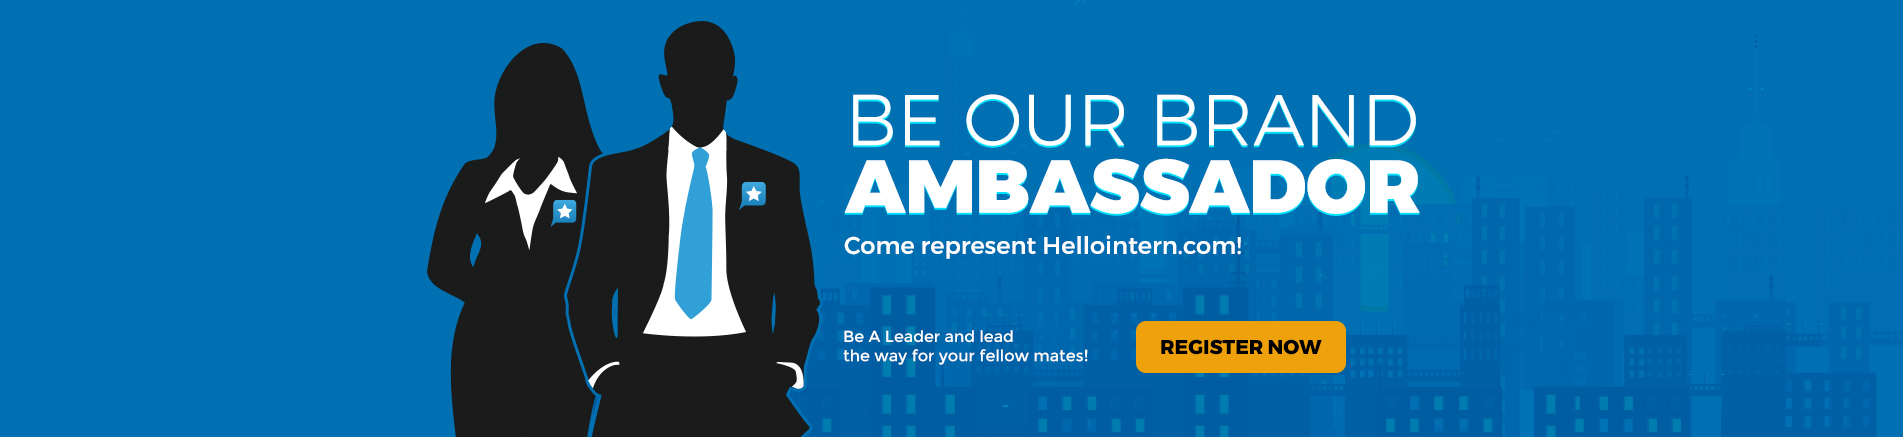 Be Our Brand Ambassador - Come Represent Hellointern.com